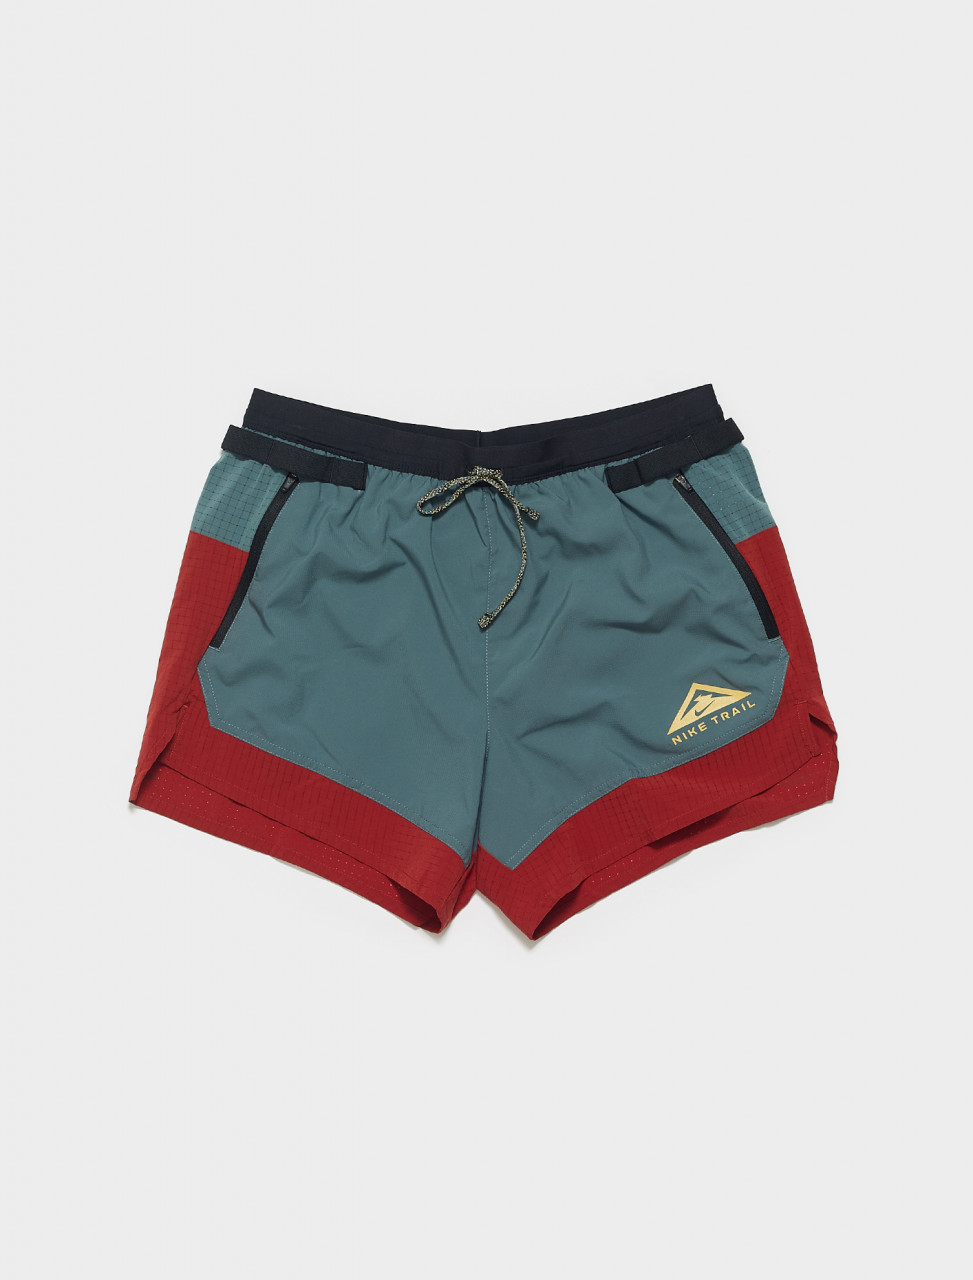 CZ9052-689 NIKE DRI FIT FLEX STRIDE SHORT IN DARK CAYENNE